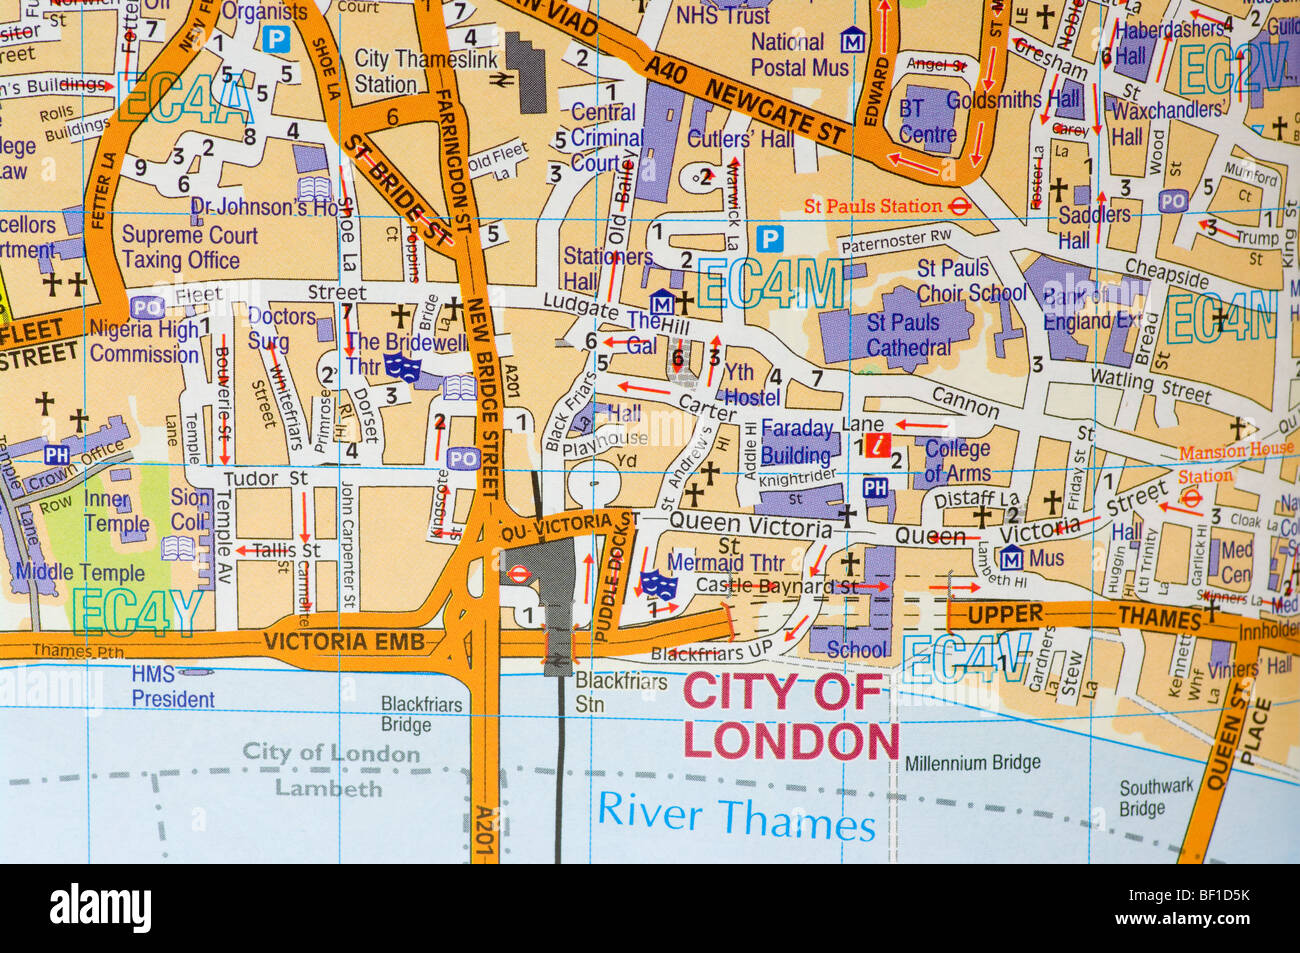 London City Area Map.Street Road Map Of The City Of London Uk Stock Photo 26462511 Alamy